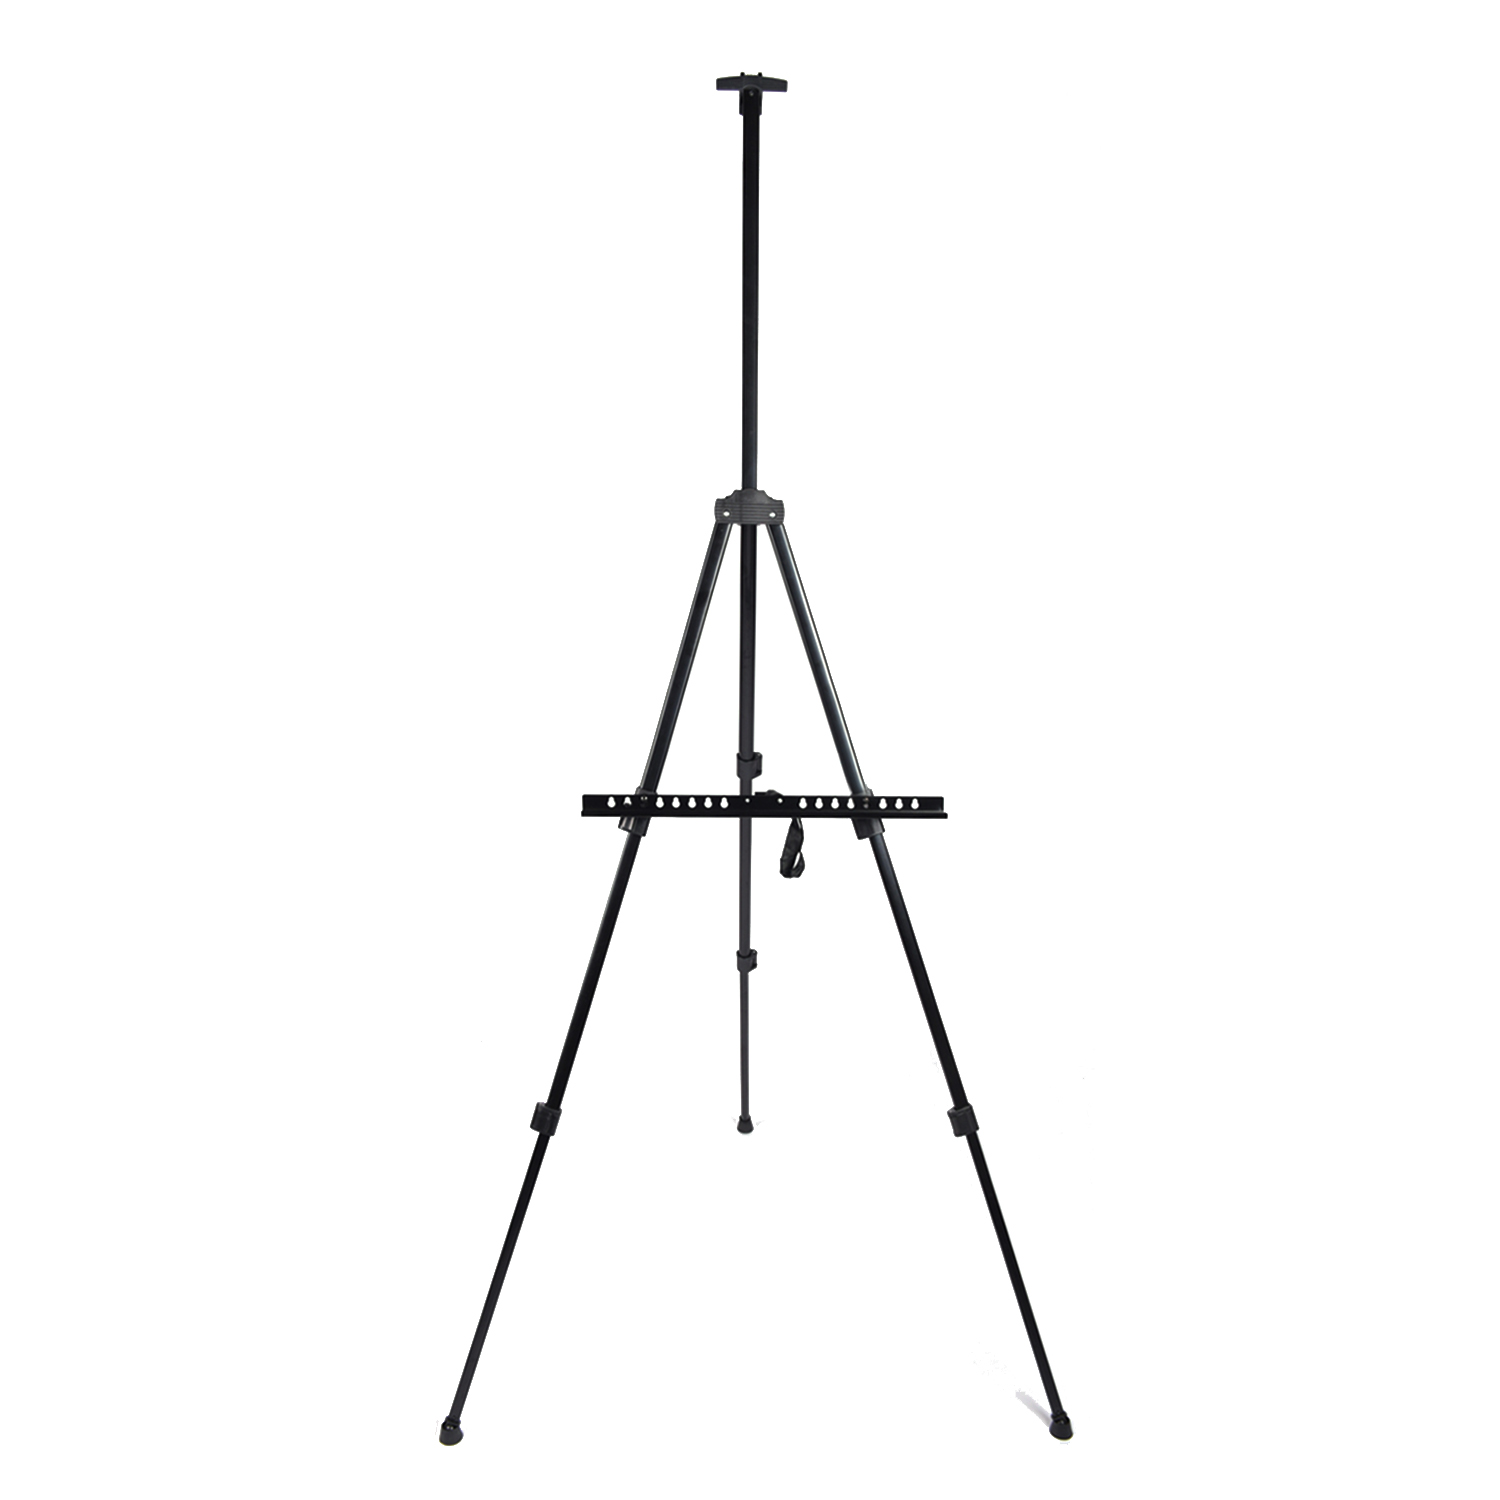 Portable Folding Telescopic Artist Art Field Studio Painting Tripod Display Mini Easel Cavalete Stand for Painting Supplier